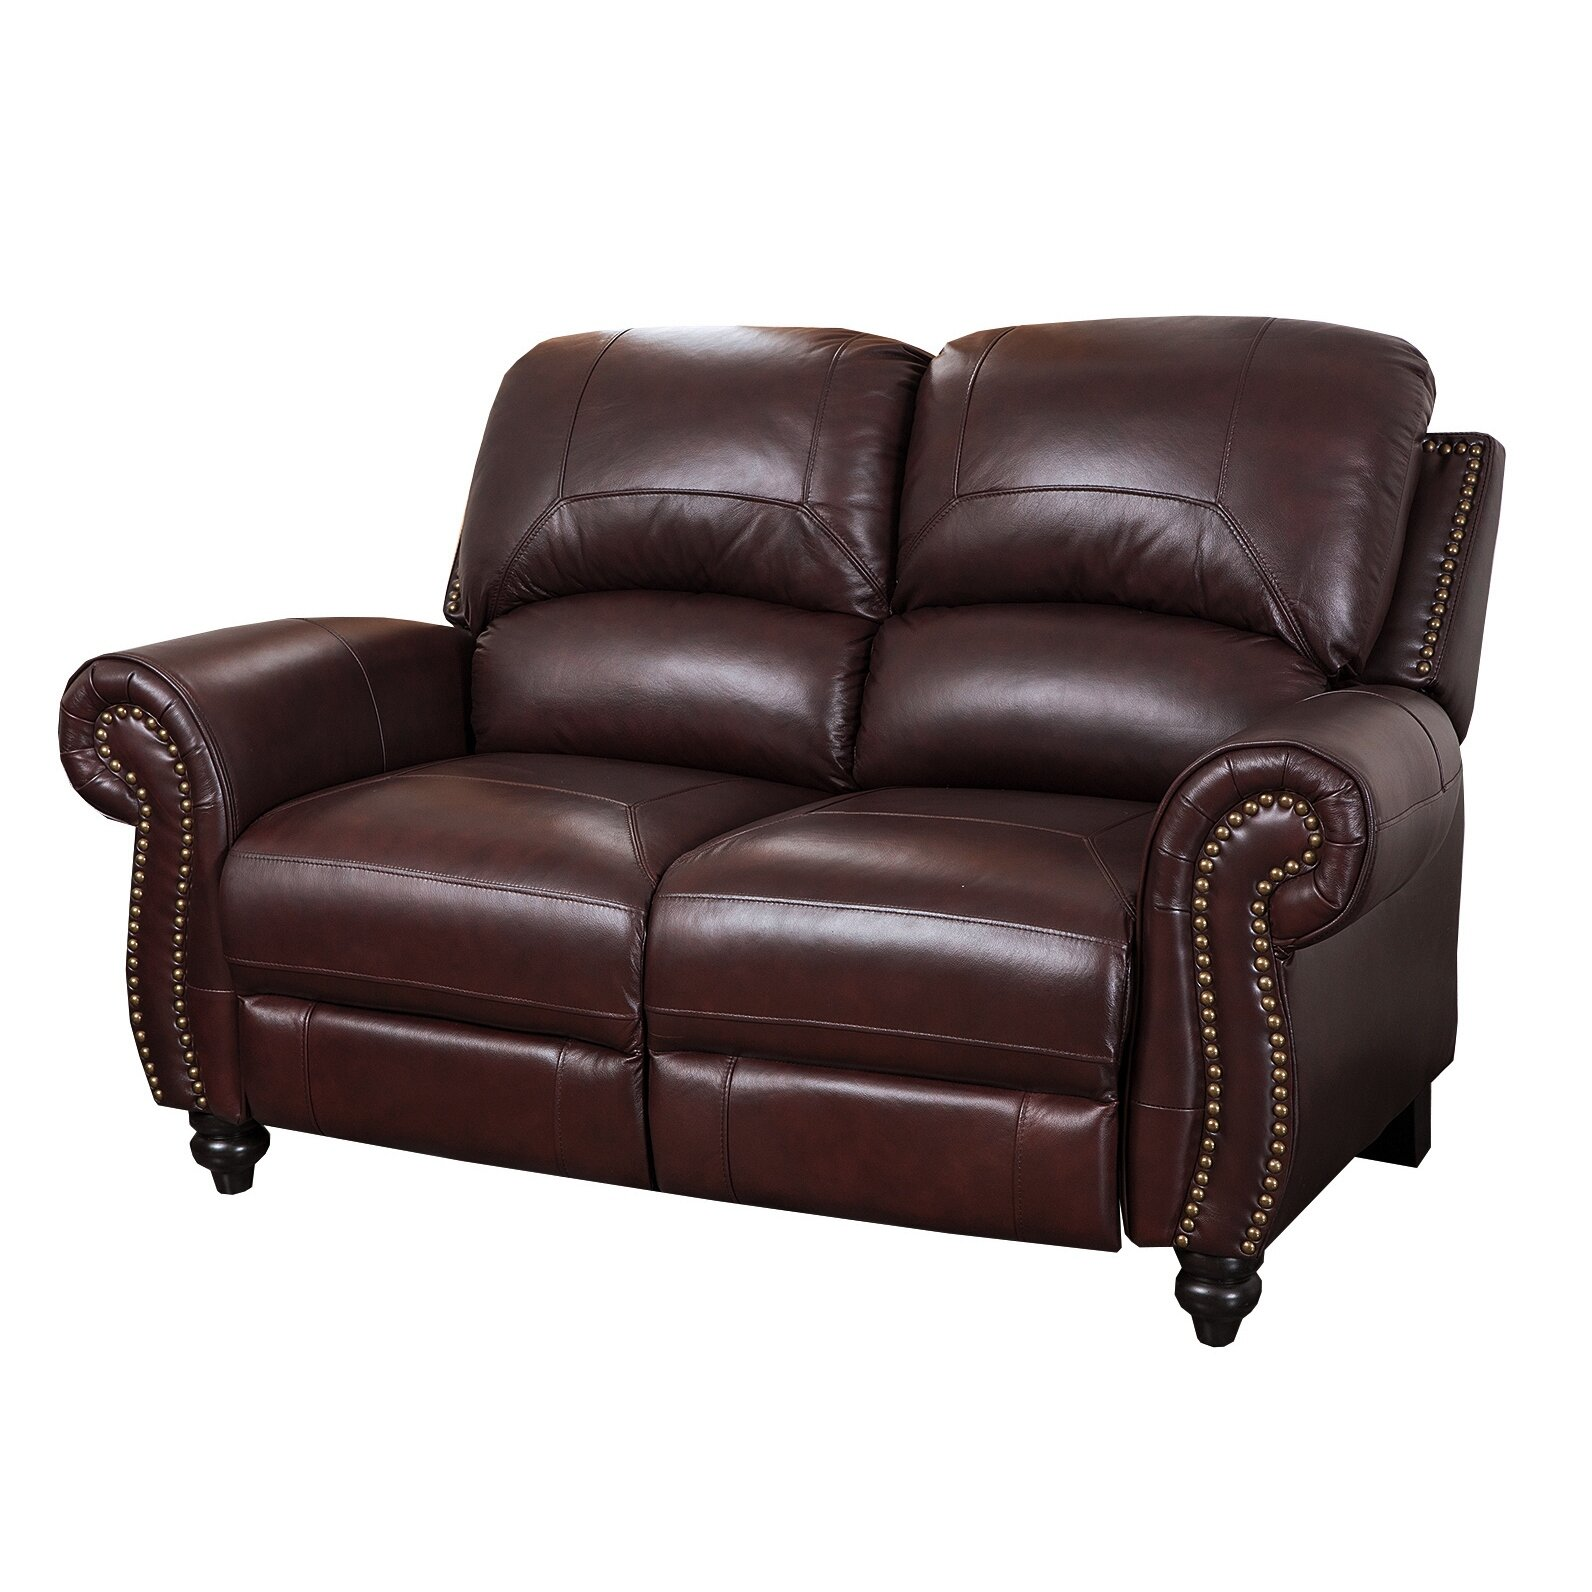 Darby home co kahle leather reclining loveseat reviews wayfair Leather reclining loveseat